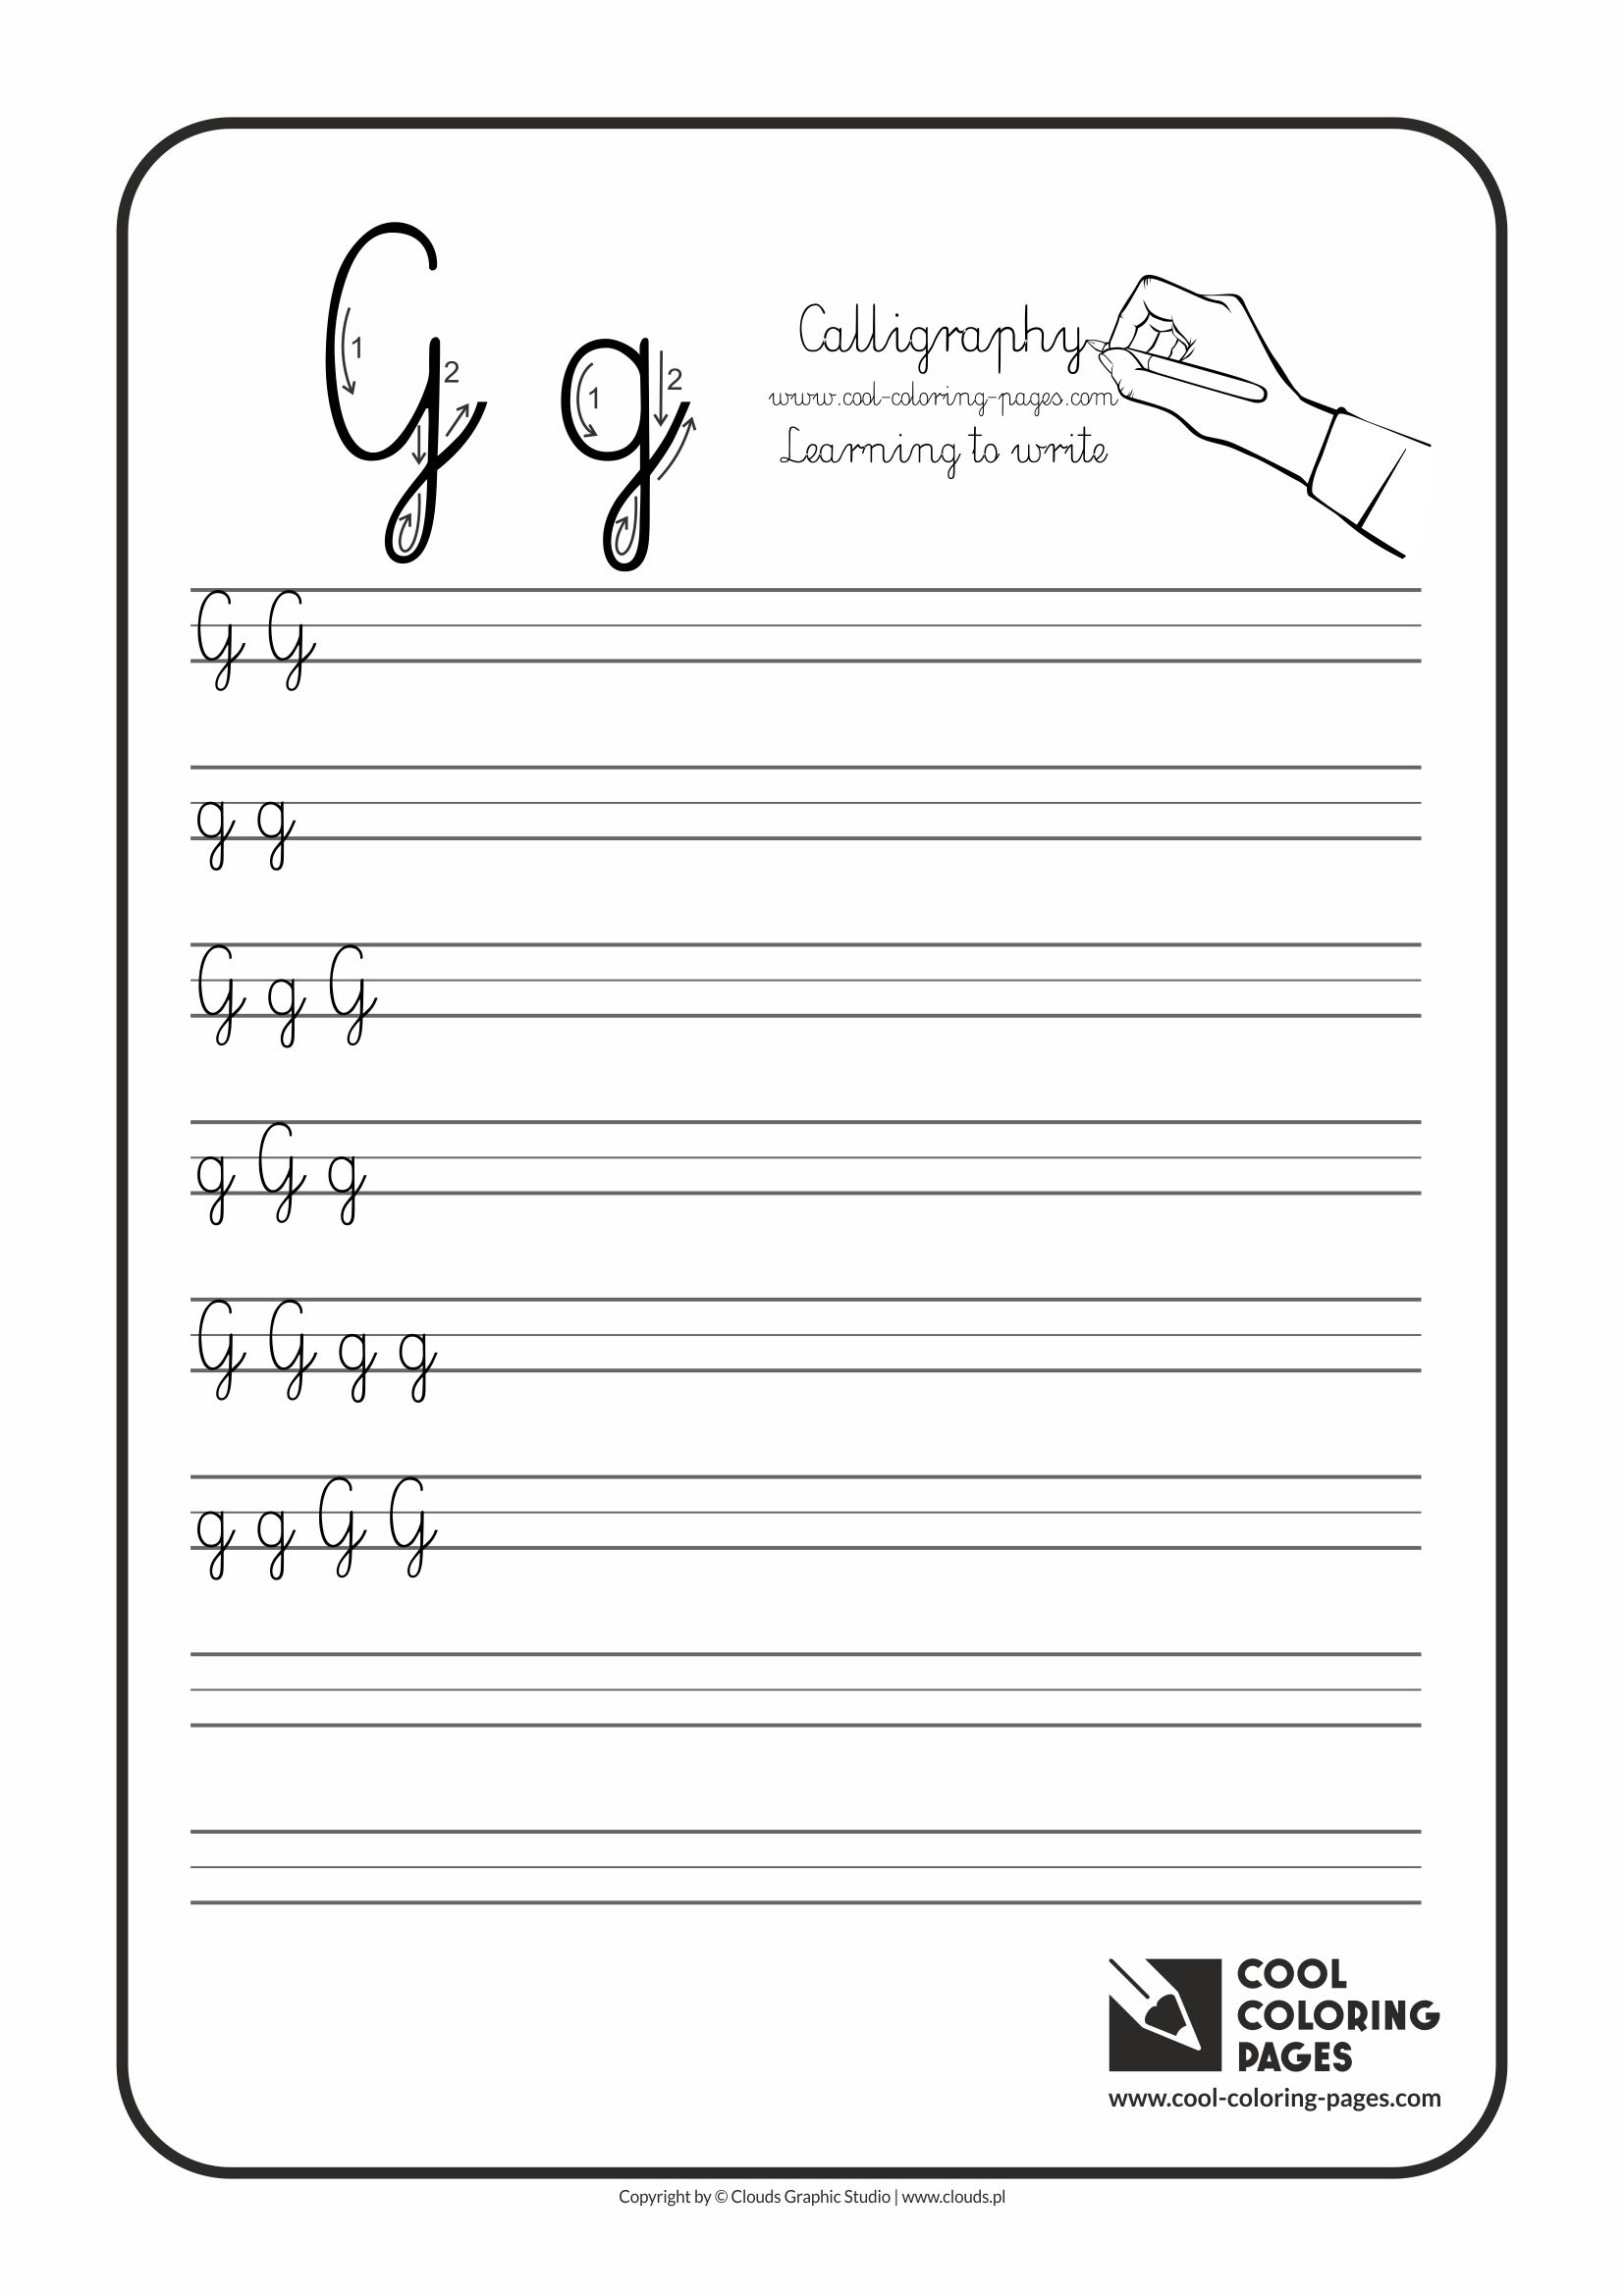 letter g calligraphy for kids cool coloring pages